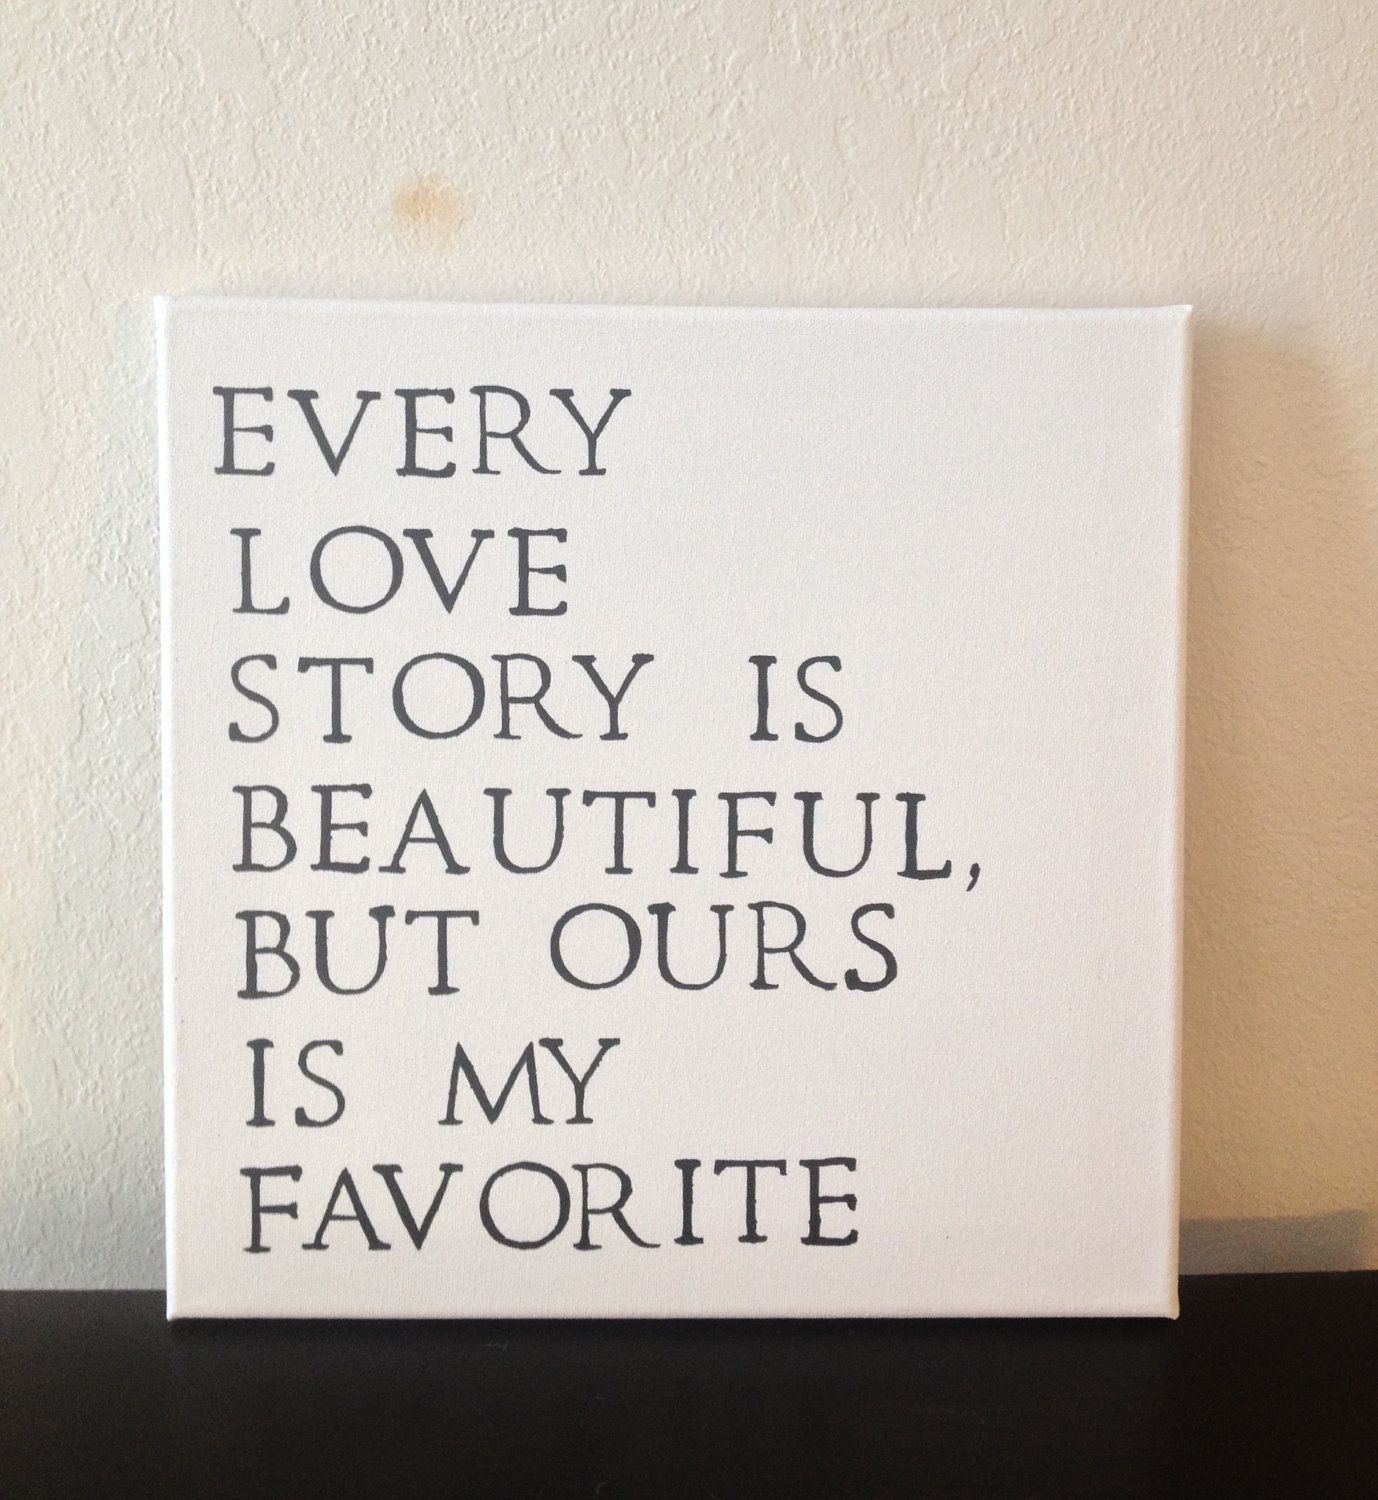 Love Quotes On Canvas New 12X12 Quote Canvas  Every Love Story Is Beautiful But Ours Is My